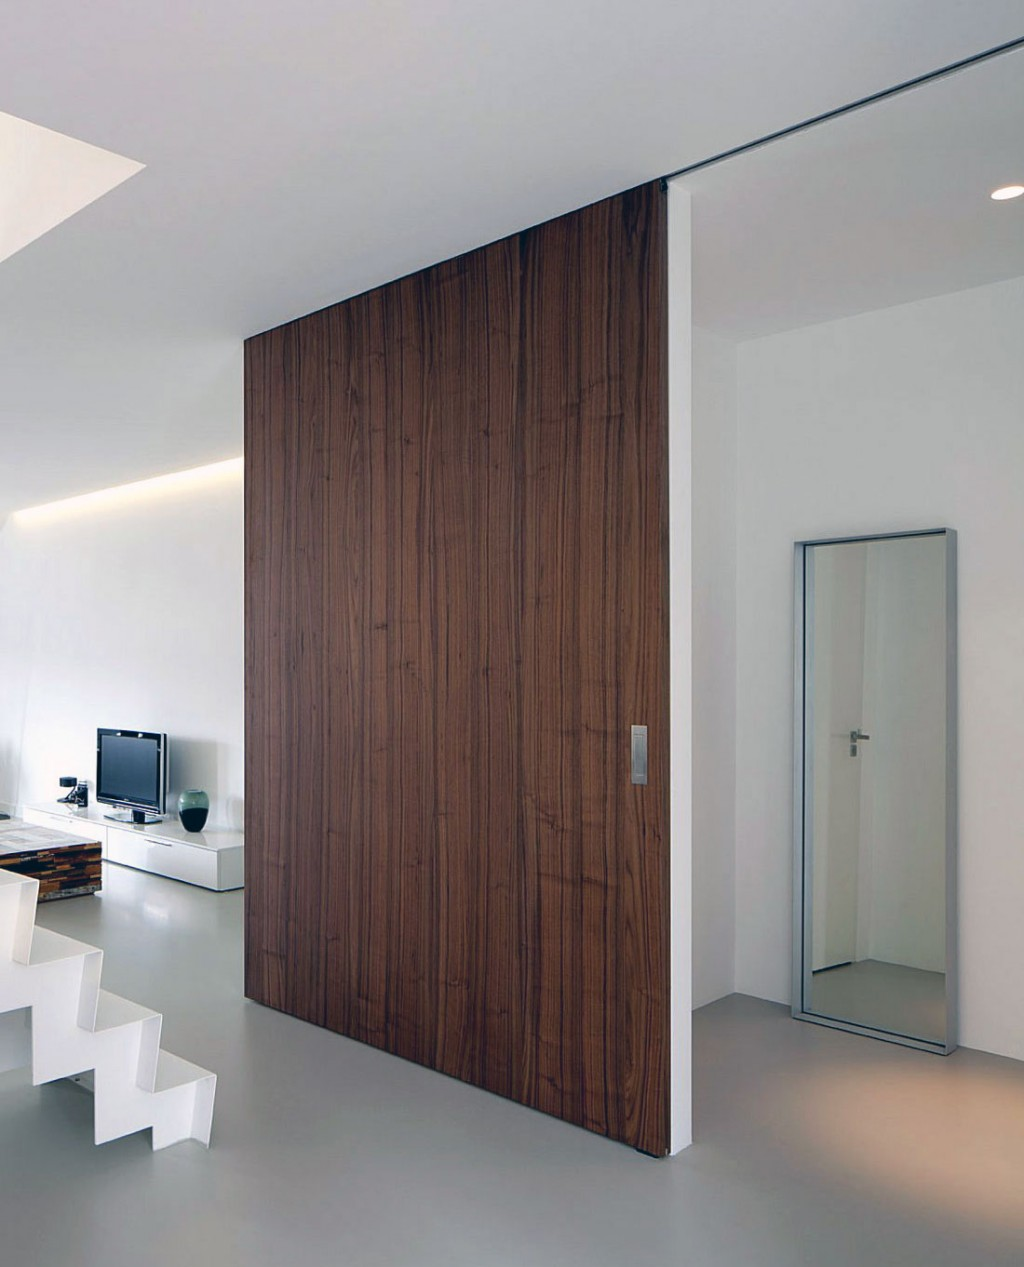 Saving Space With Slidings Doors The Grey Home